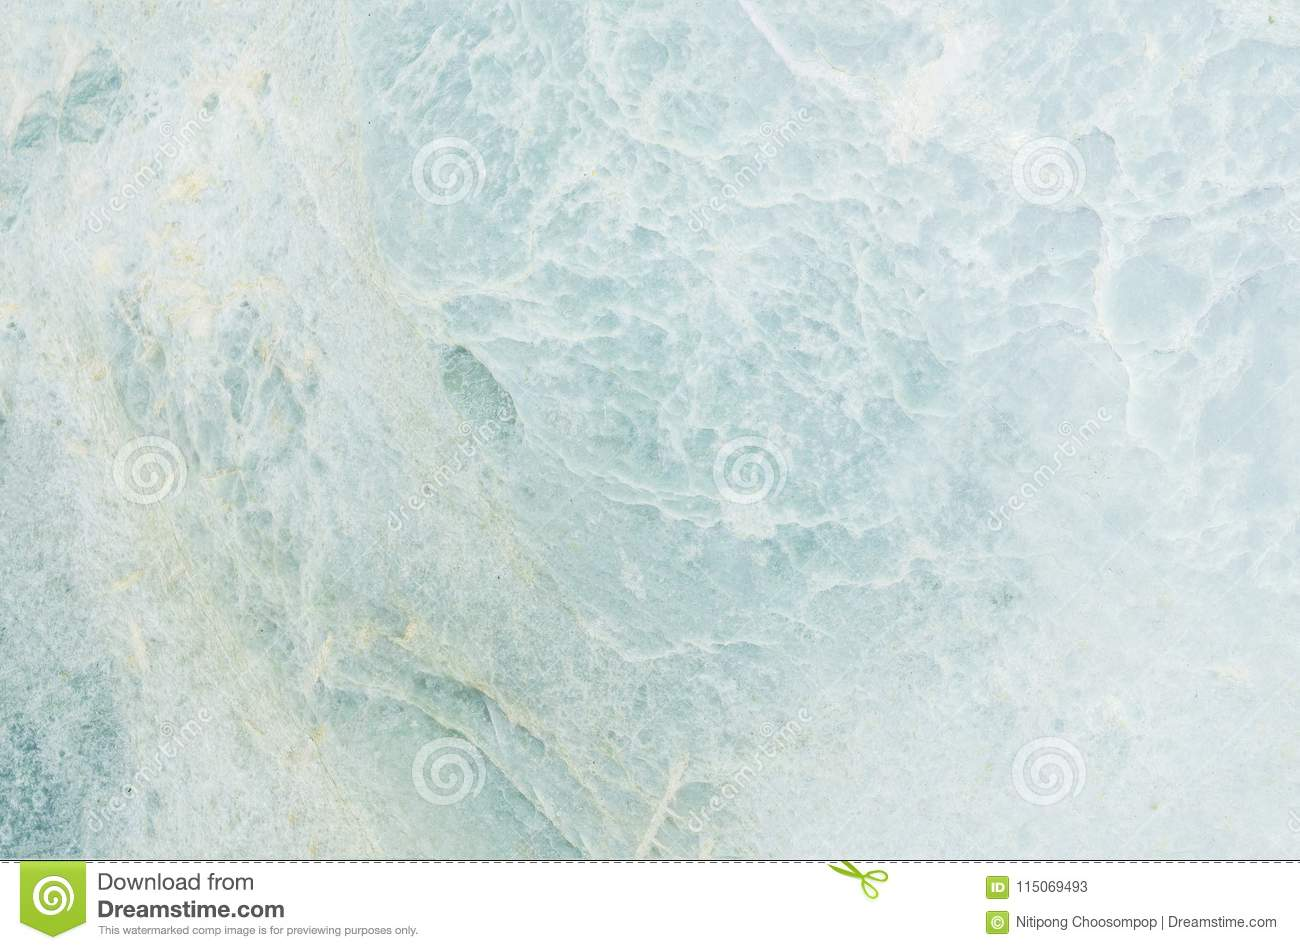 Closeup surface abstract marble pattern at the blue marble stone floor texture background